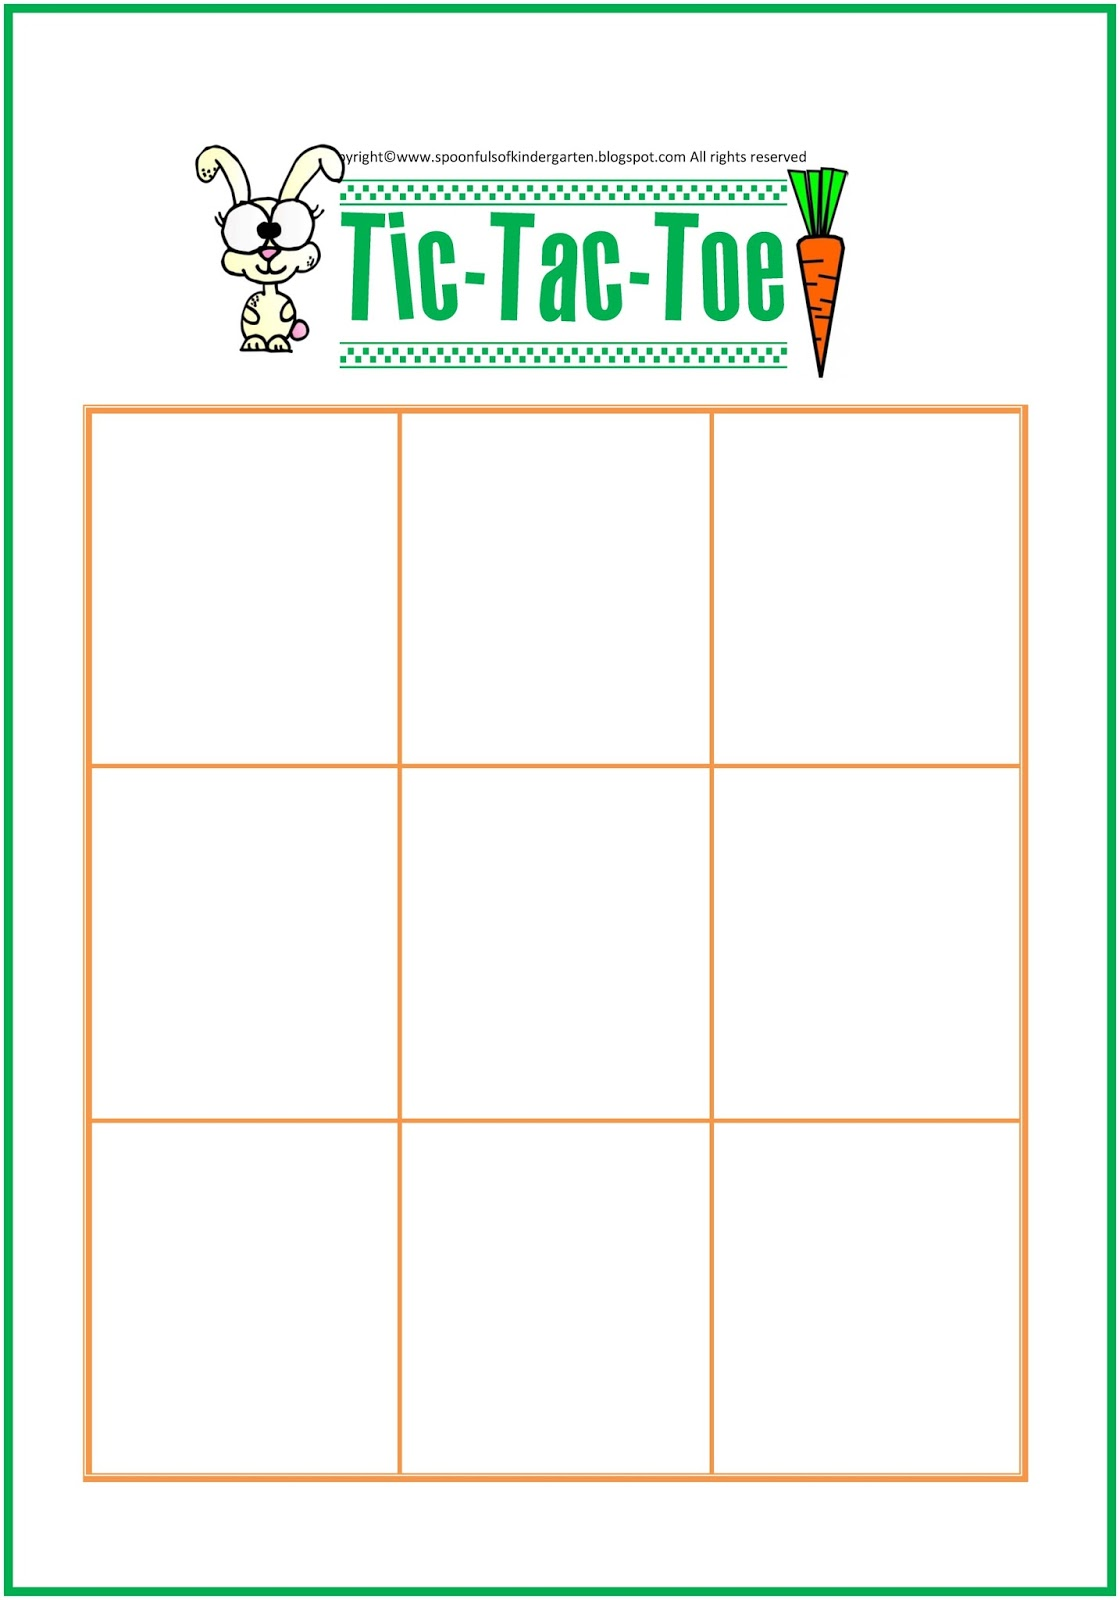 Spoonfuls Of Kindergarten Tic Tac Toe Game Board For